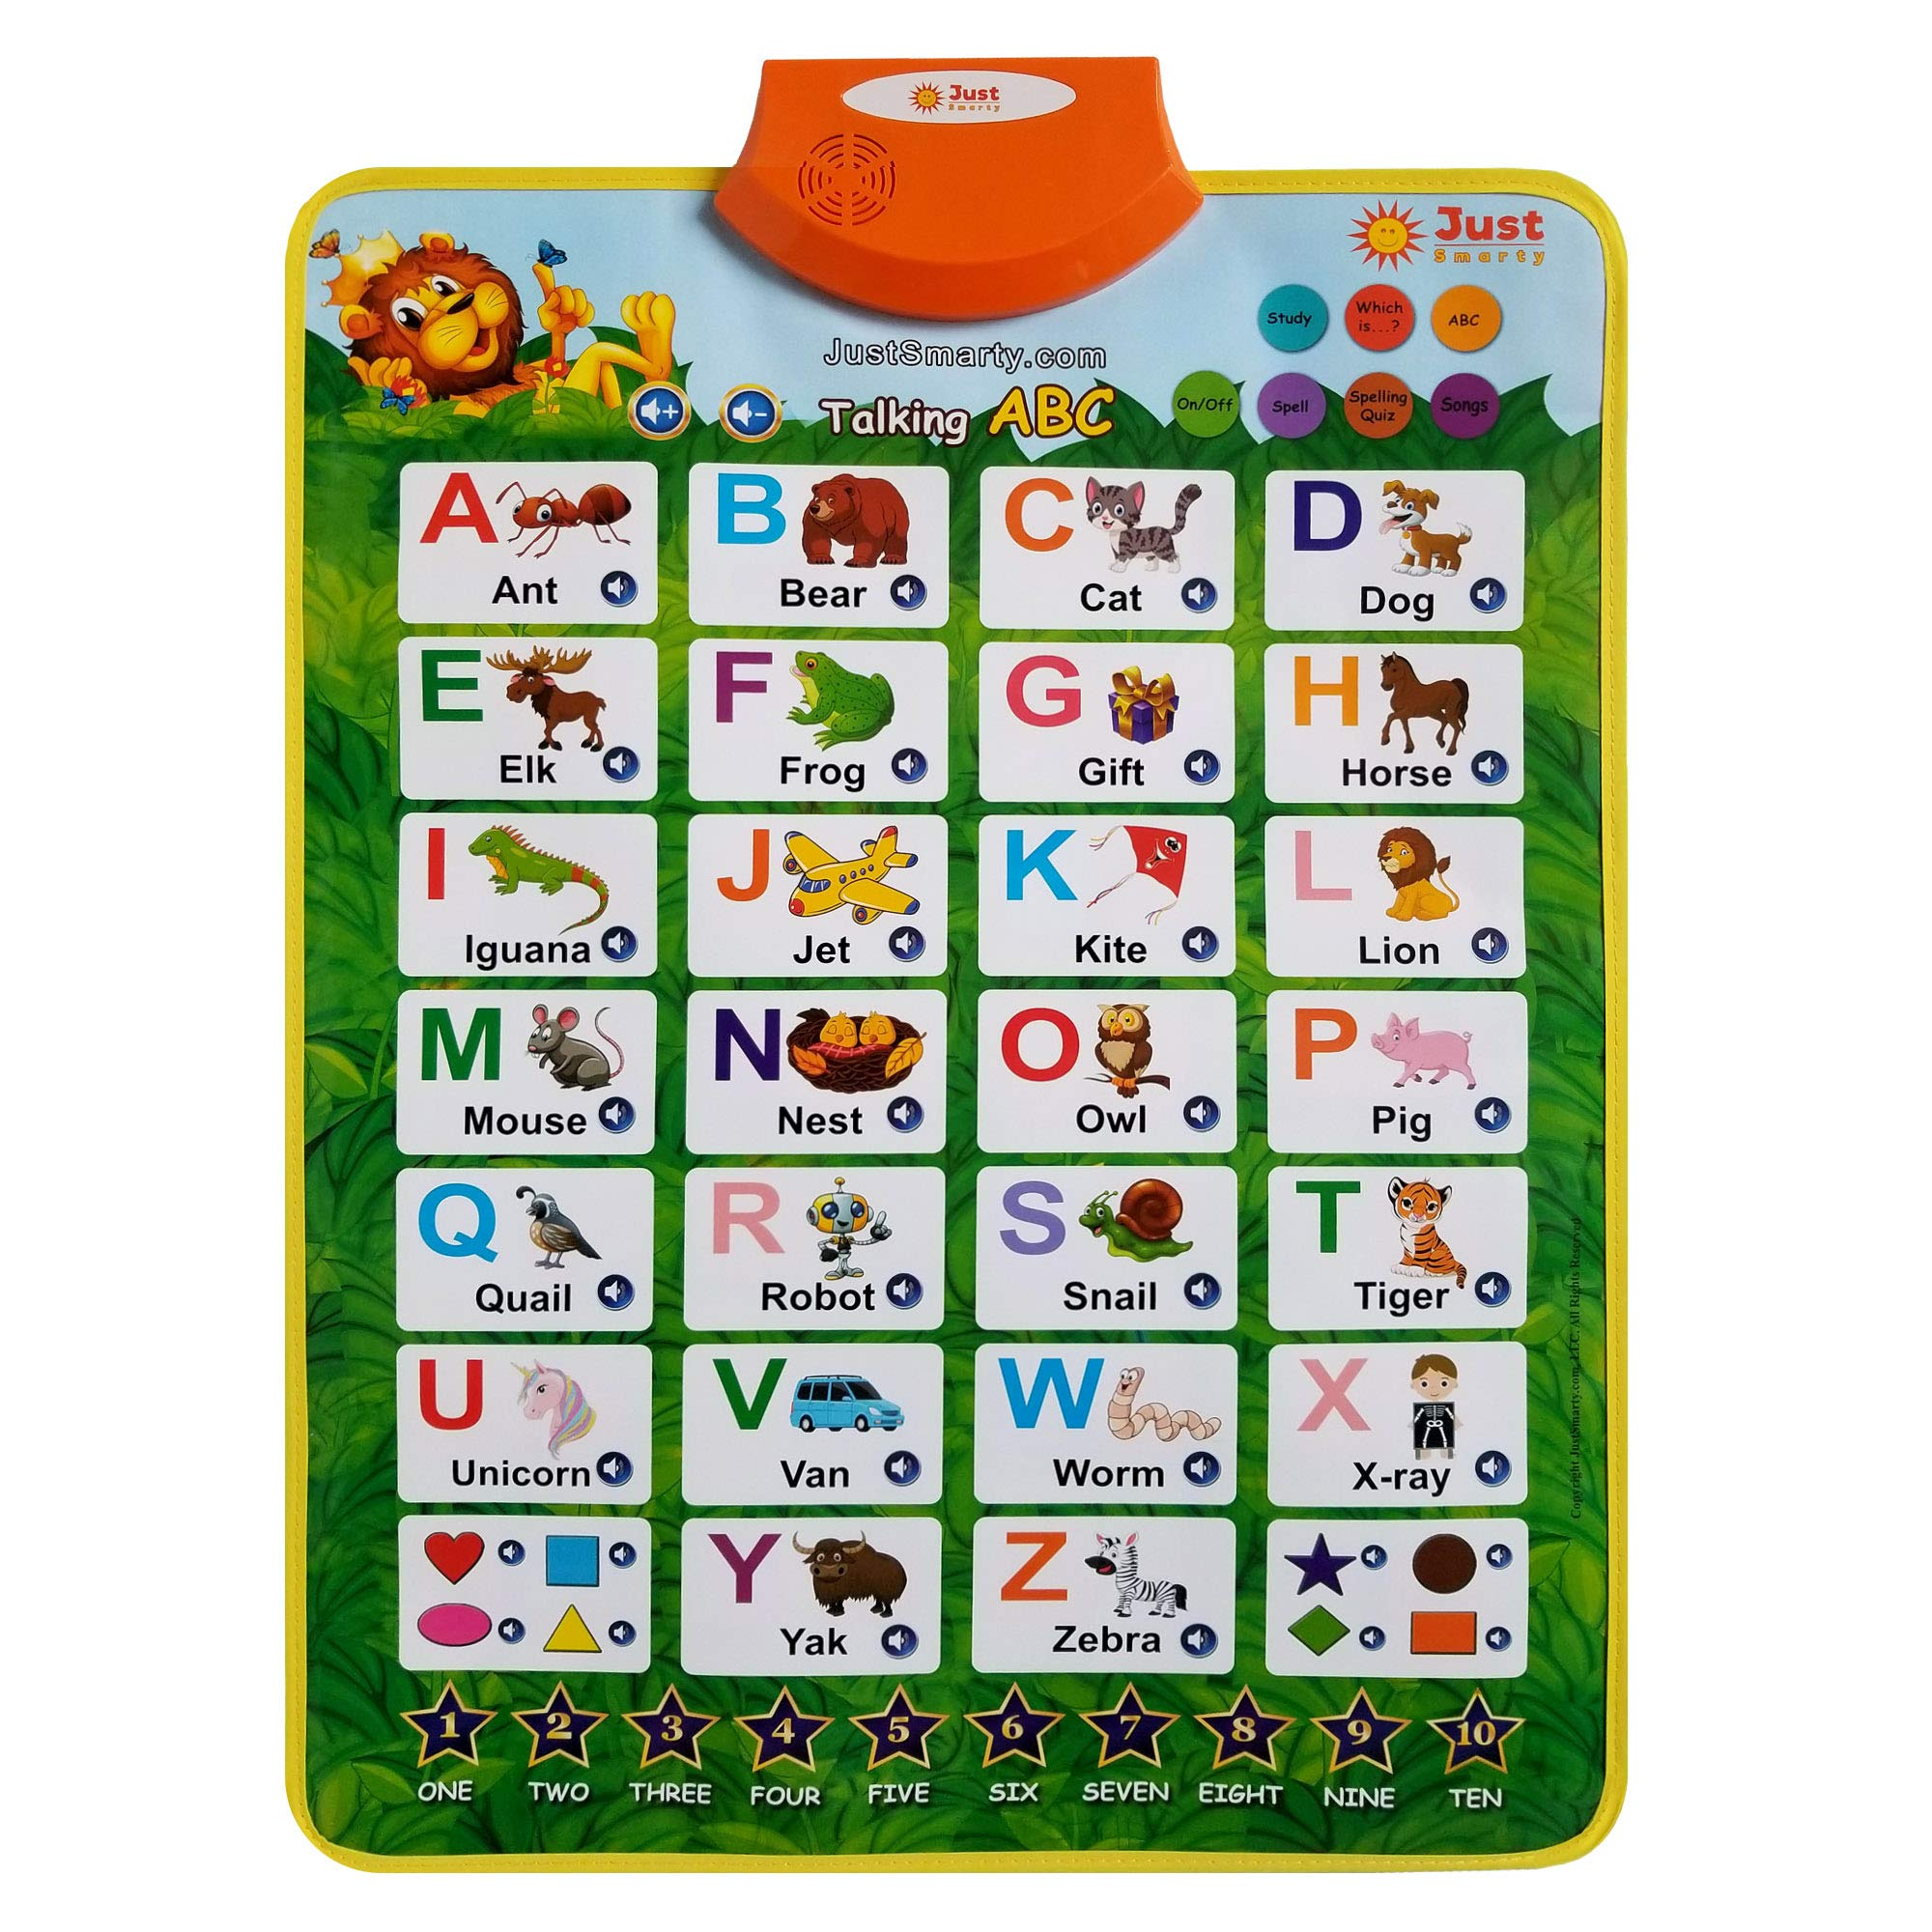 Just Smarty Electronic Interactive Alphabet Wall Chart with Shapes, Colors and Spelling, Talking ABC & 123s & Music Poster, Best Educational Toy for Toddler. Kids Fun Learning at Daycare, Preschool by Just Smarty (Image #6)